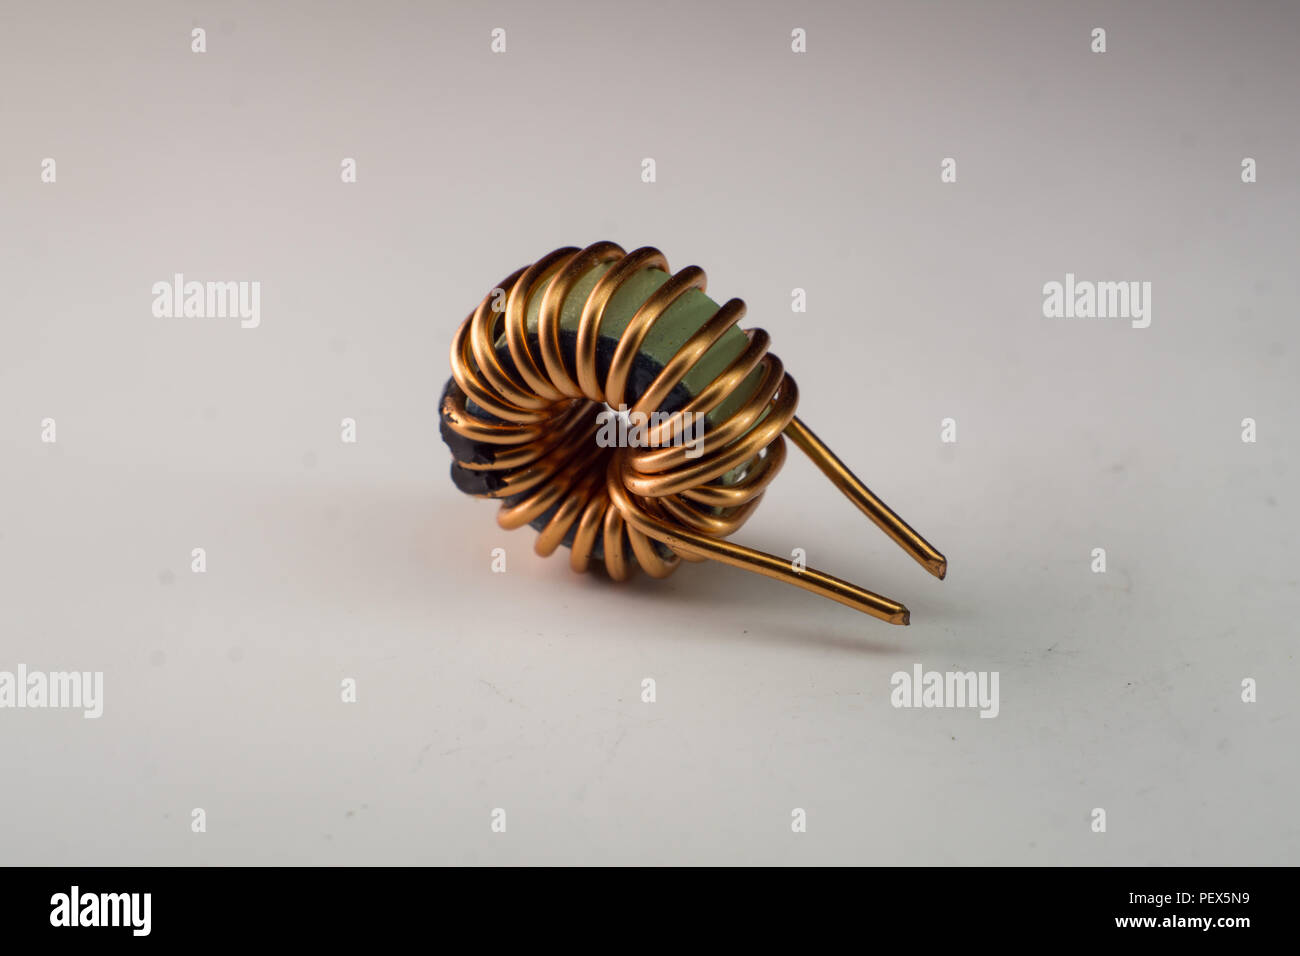 Inductor Stock Photos Images Alamy Simple Circuit A Small Copper Wire Wrapped Ferrite Core Choke With White Background